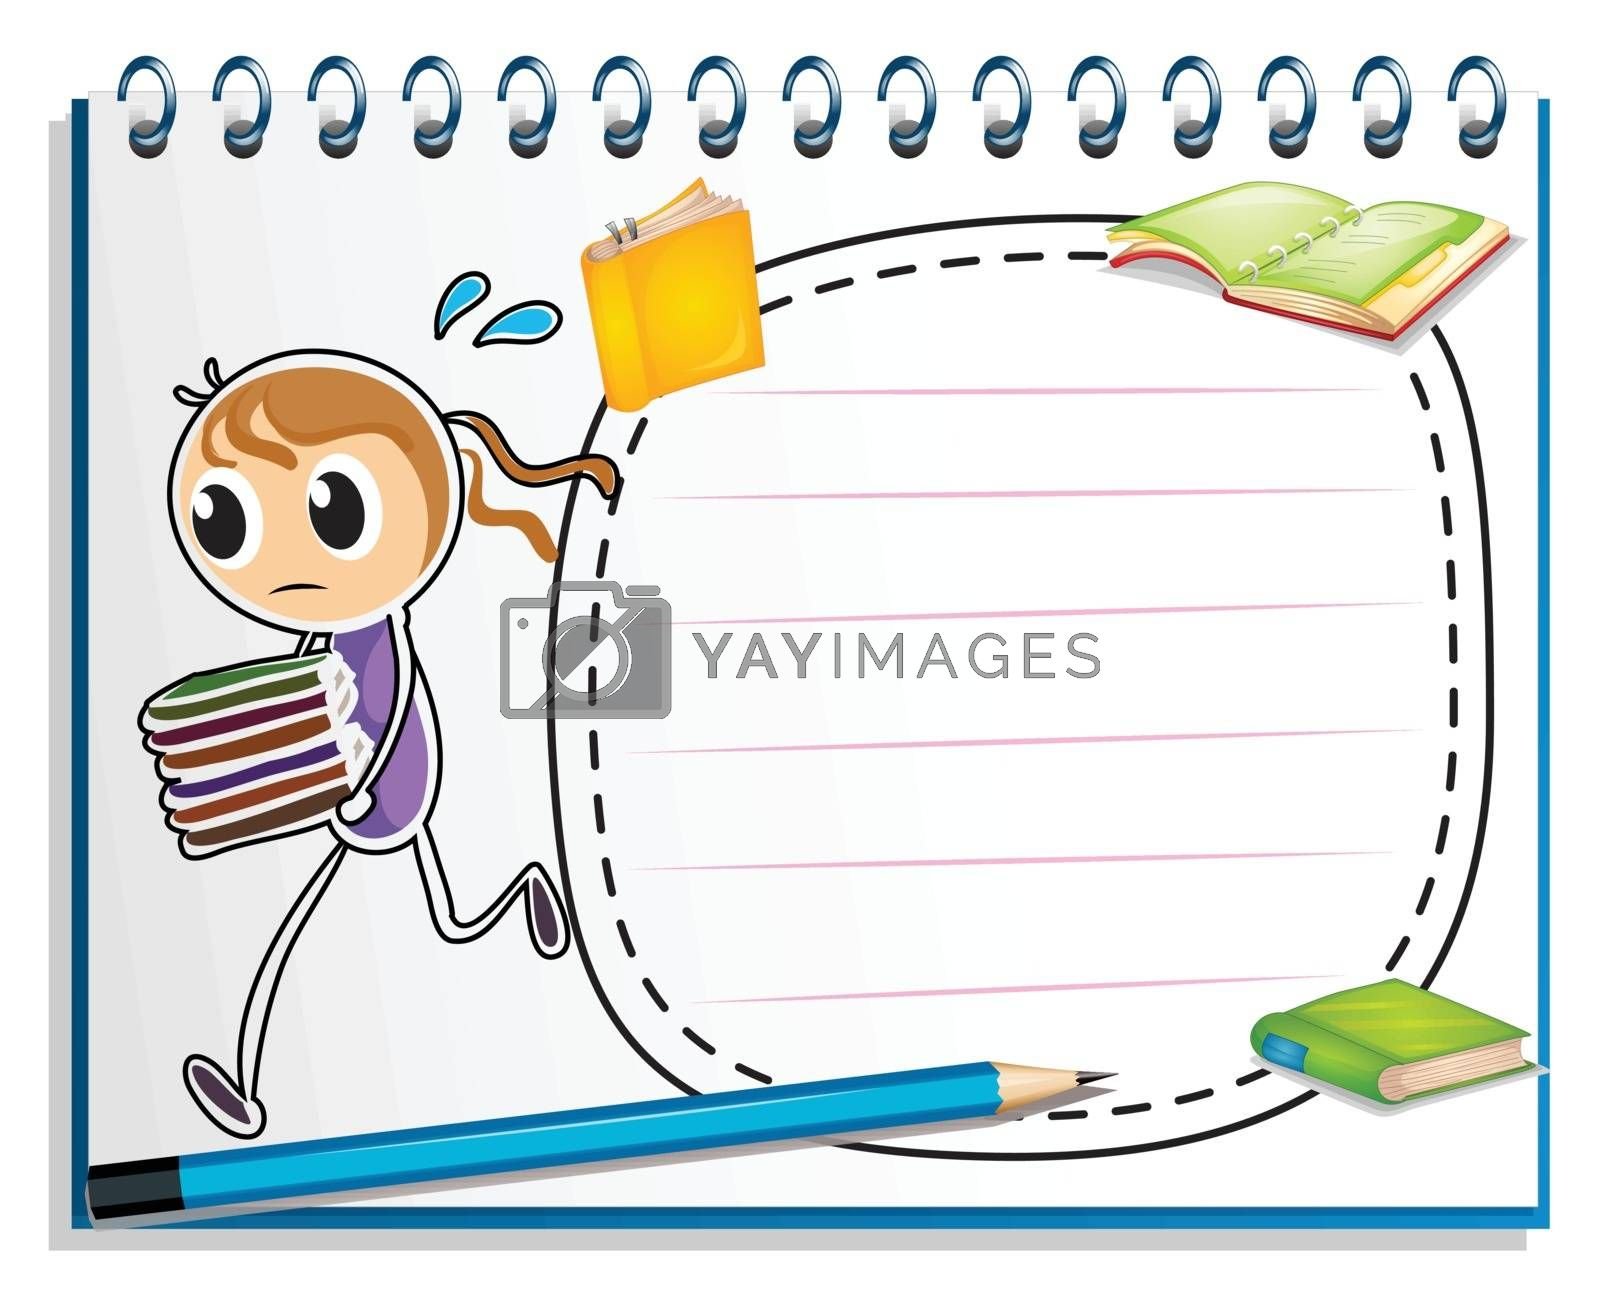 Illustration of a notebook with a sketch of a girl running with books on a white background